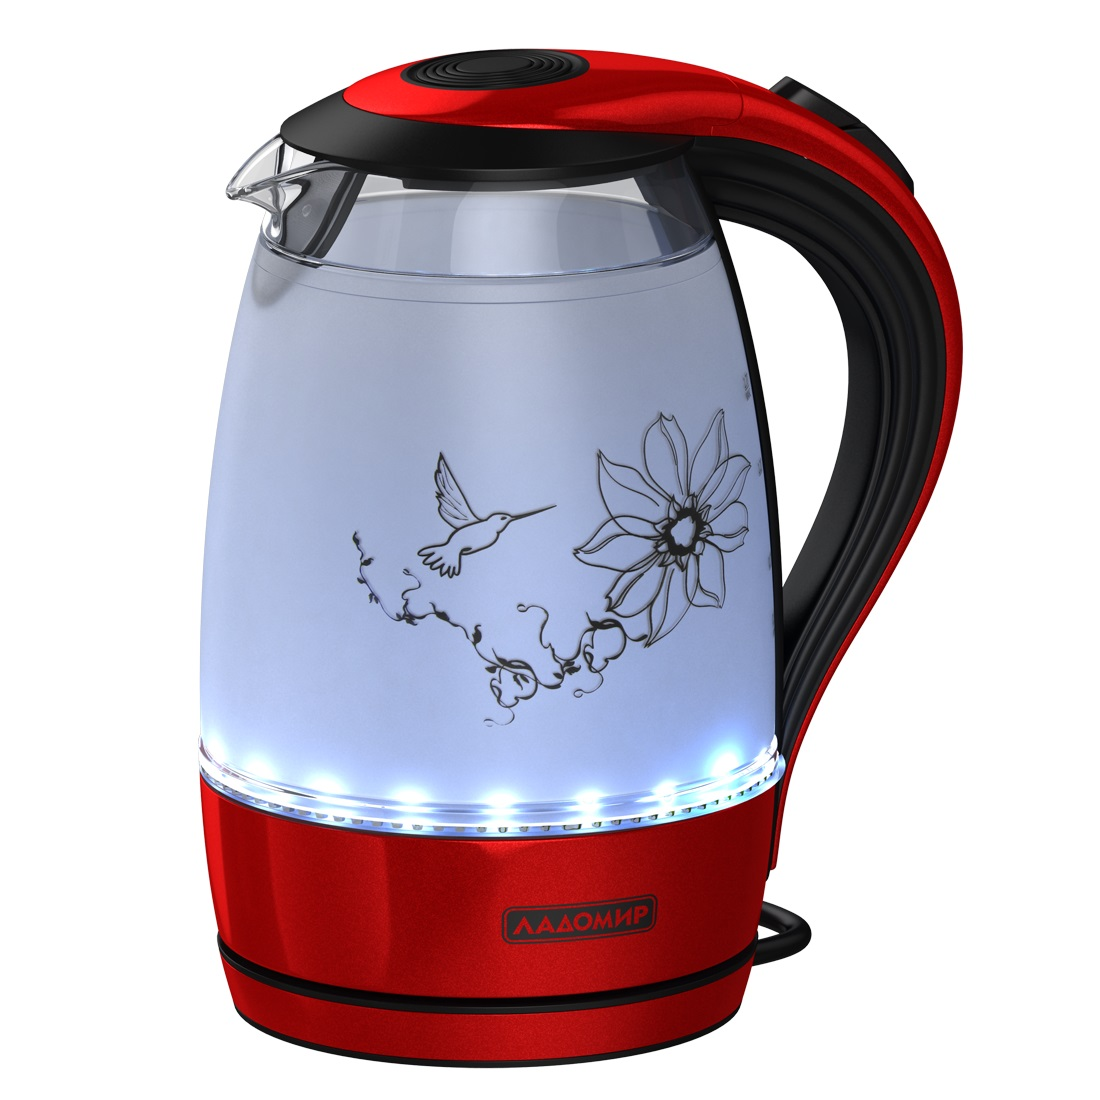 Electric kettle Ladomir 133